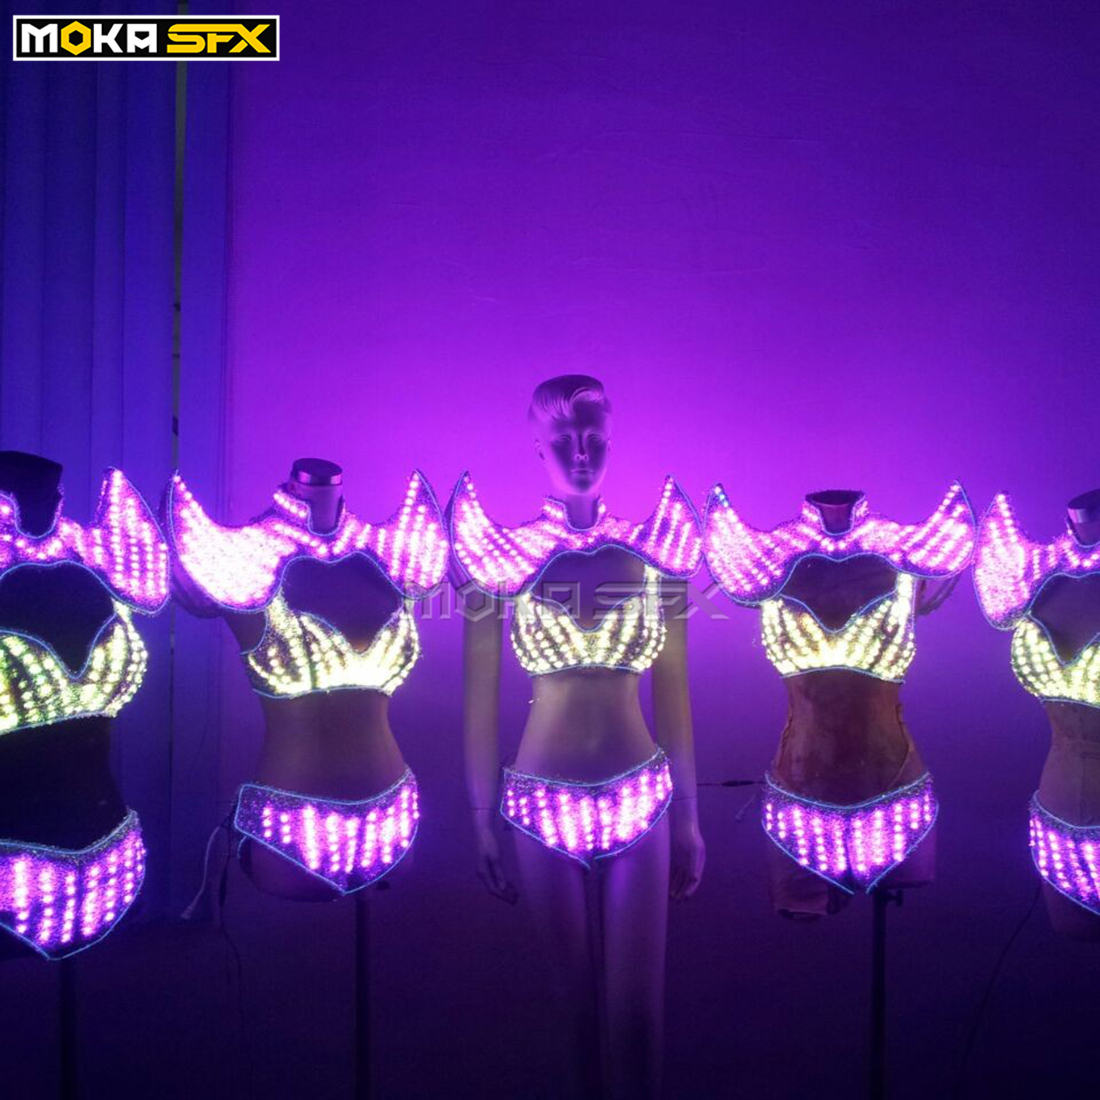 LED luminous Women dress glowing lady robot costume color change women sexy bra clothes for party DJ nightclub stage wear show